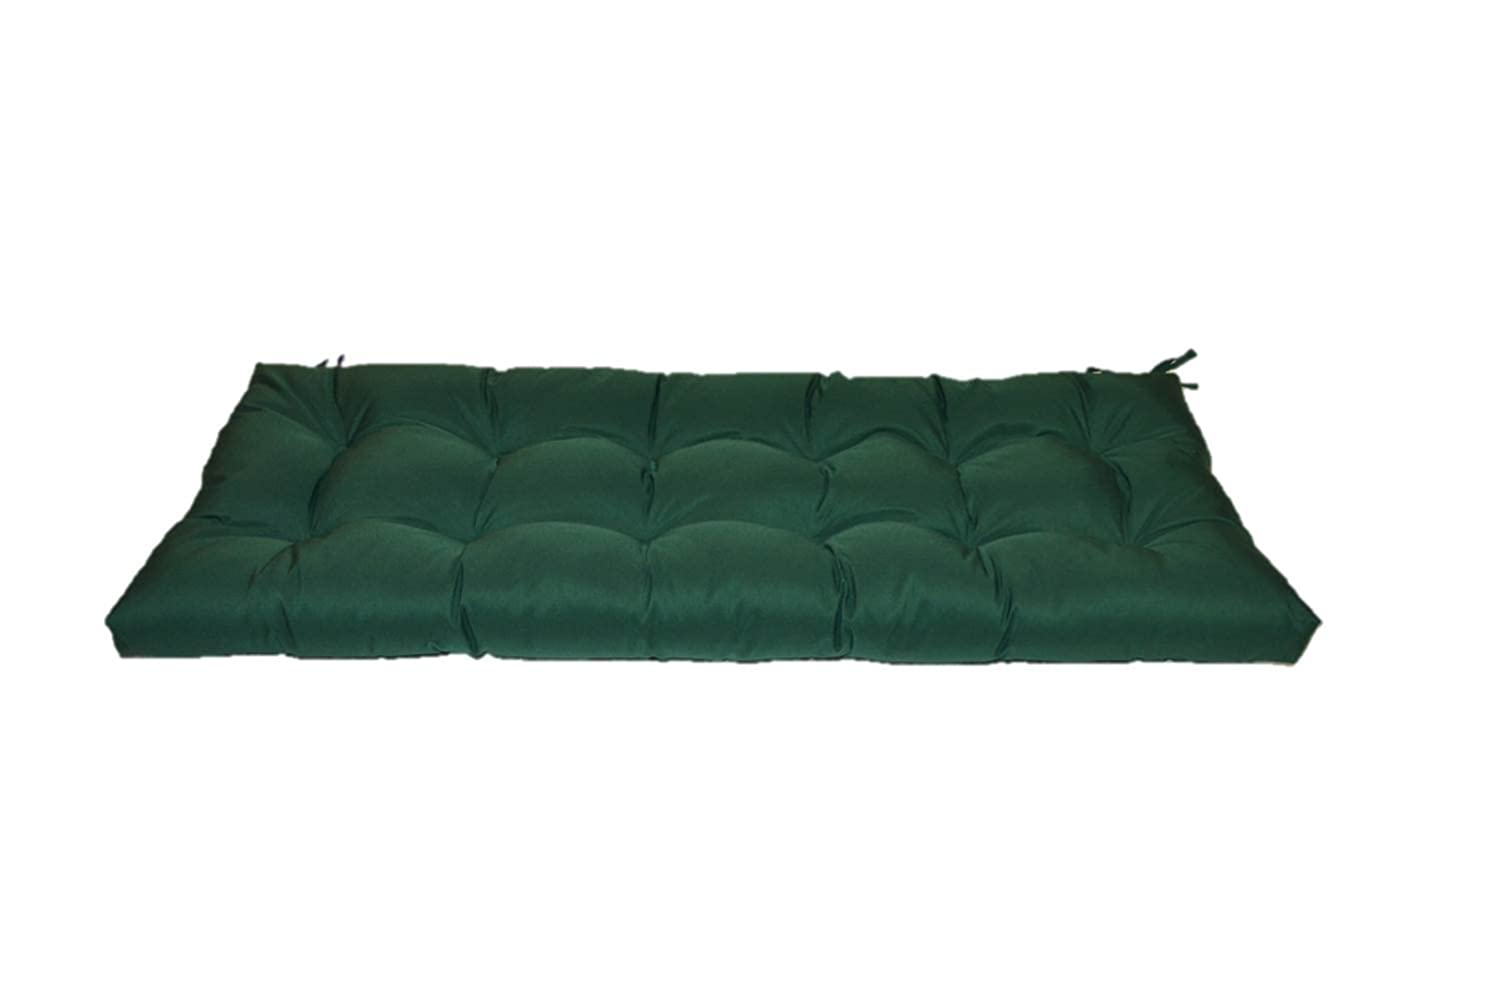 Resort Spa Home Decor Hunter Forest Green Tufted Cushion for Bench, Swing, or Glider – Choose Select Size 55 X 18